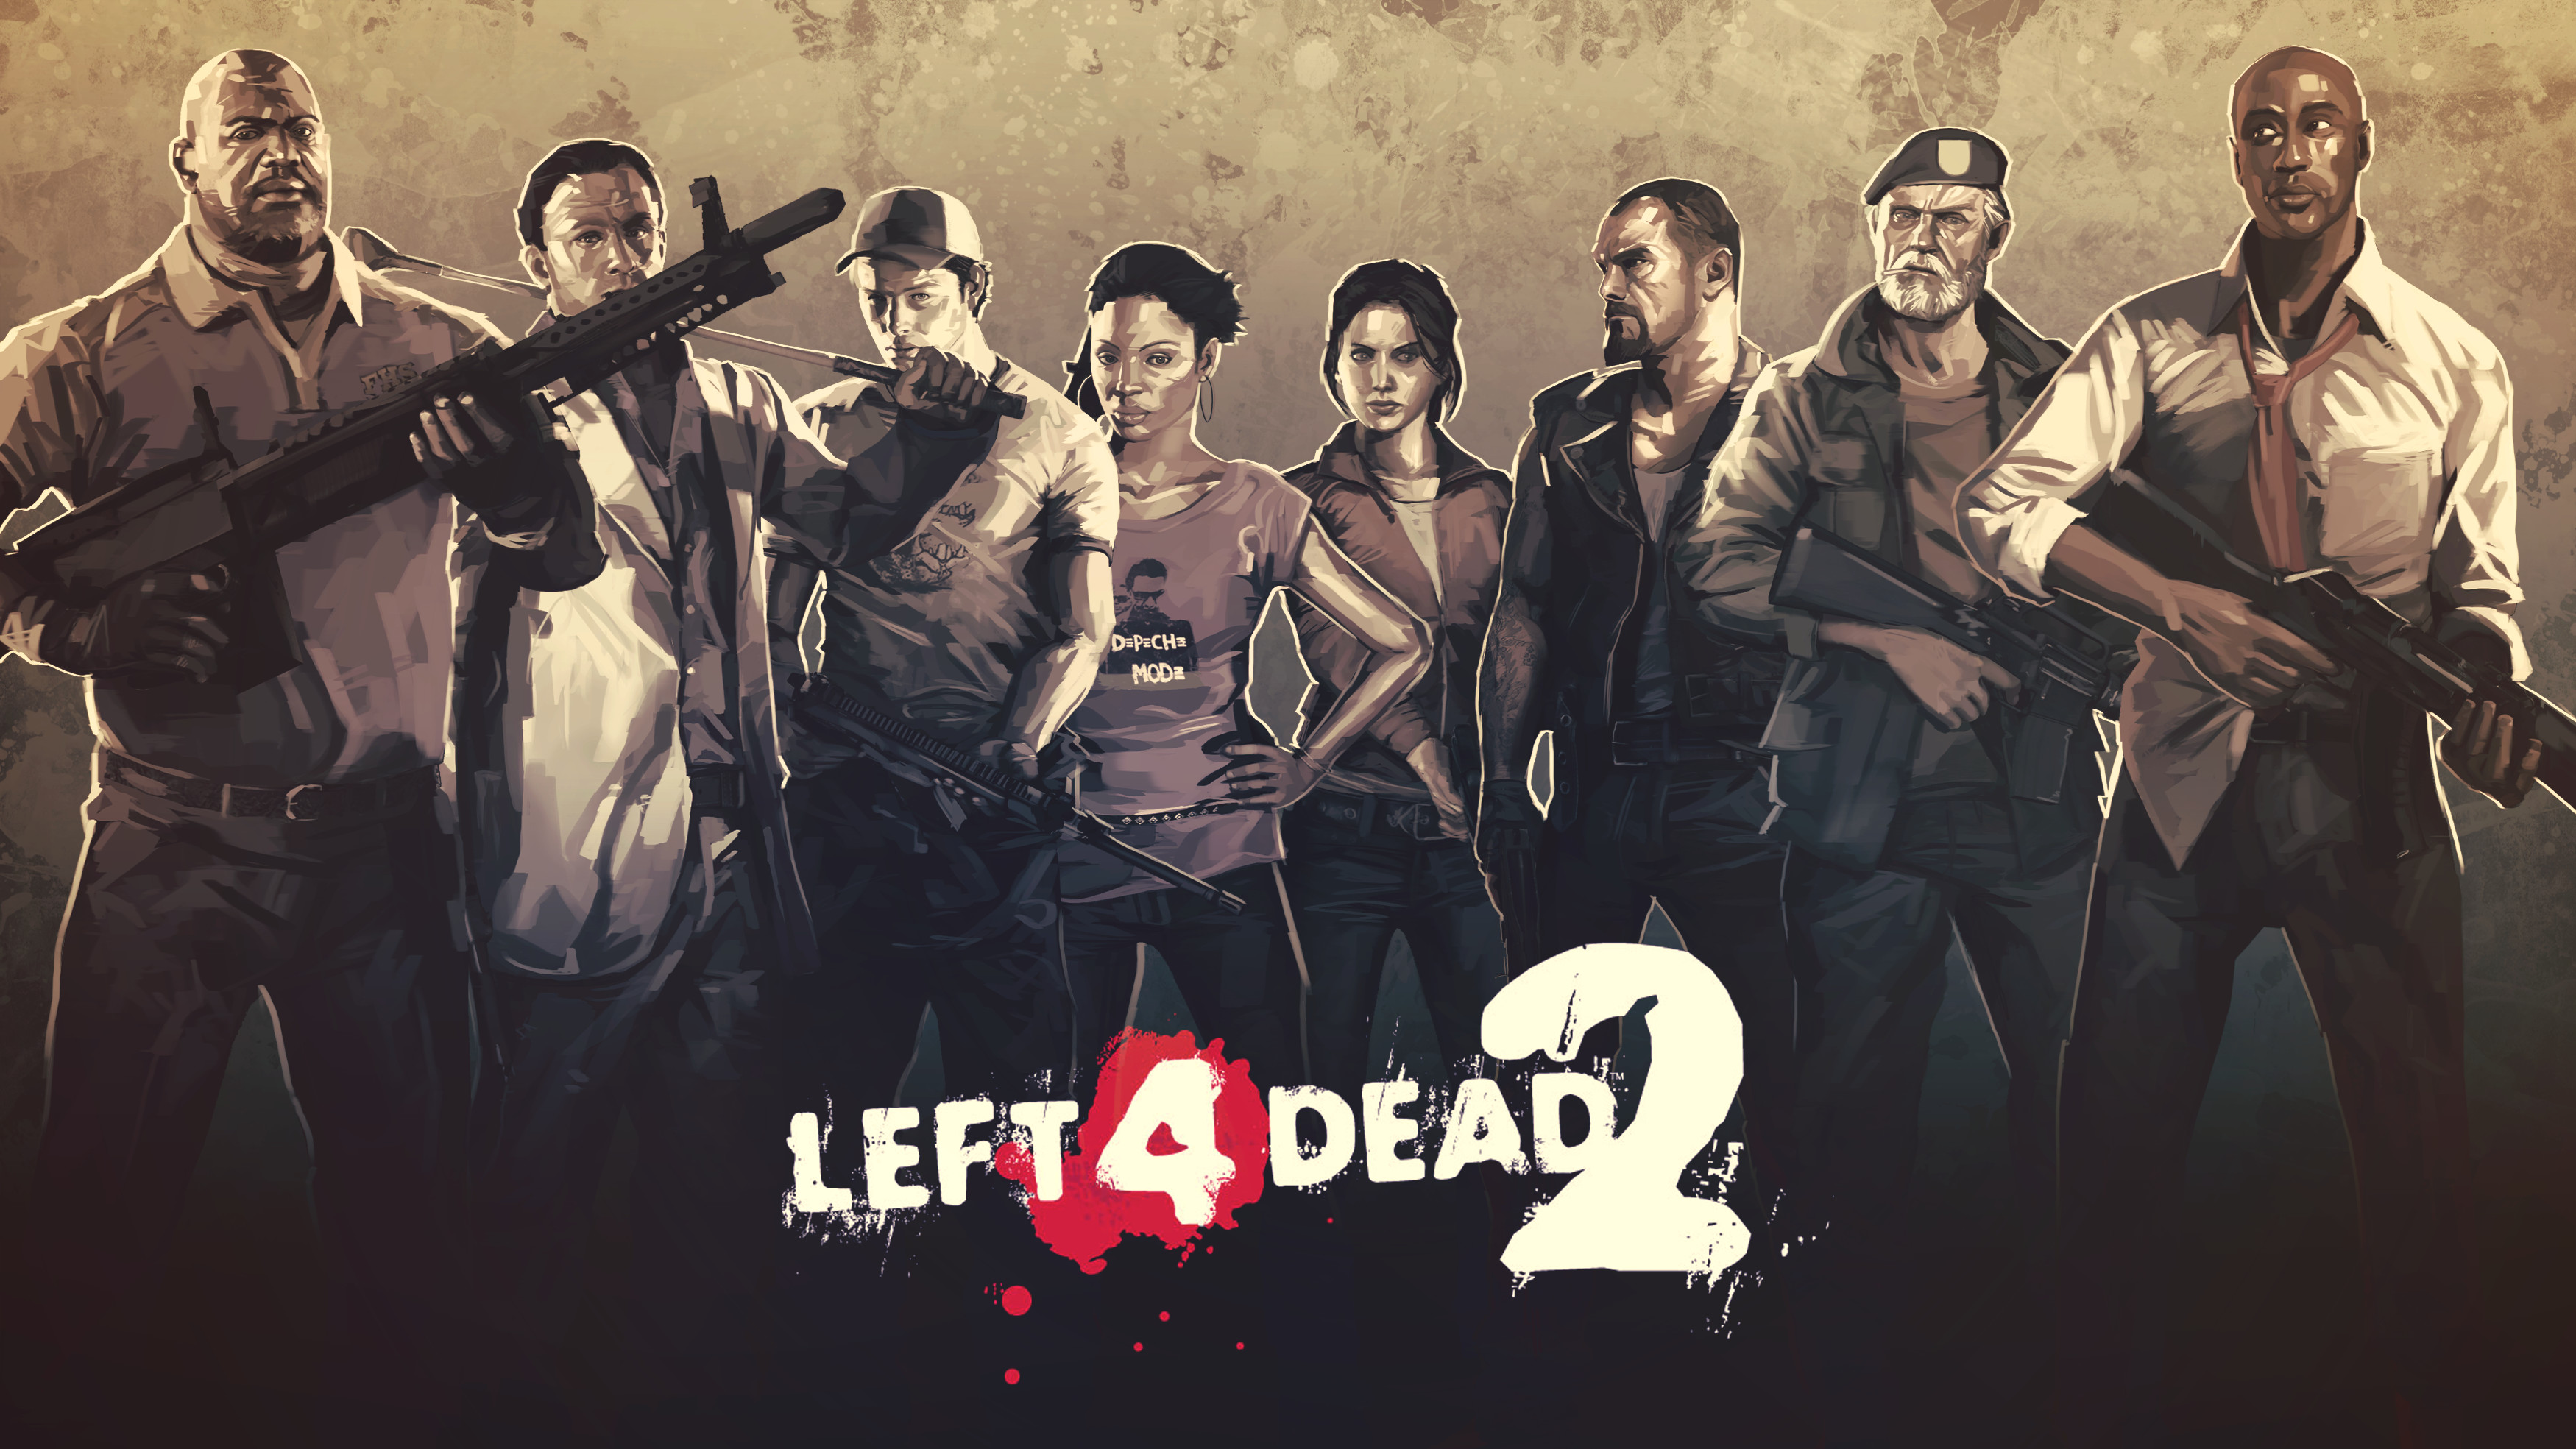 Res: 3500x1969, Left 4 Dead 2 HD Wallpapers